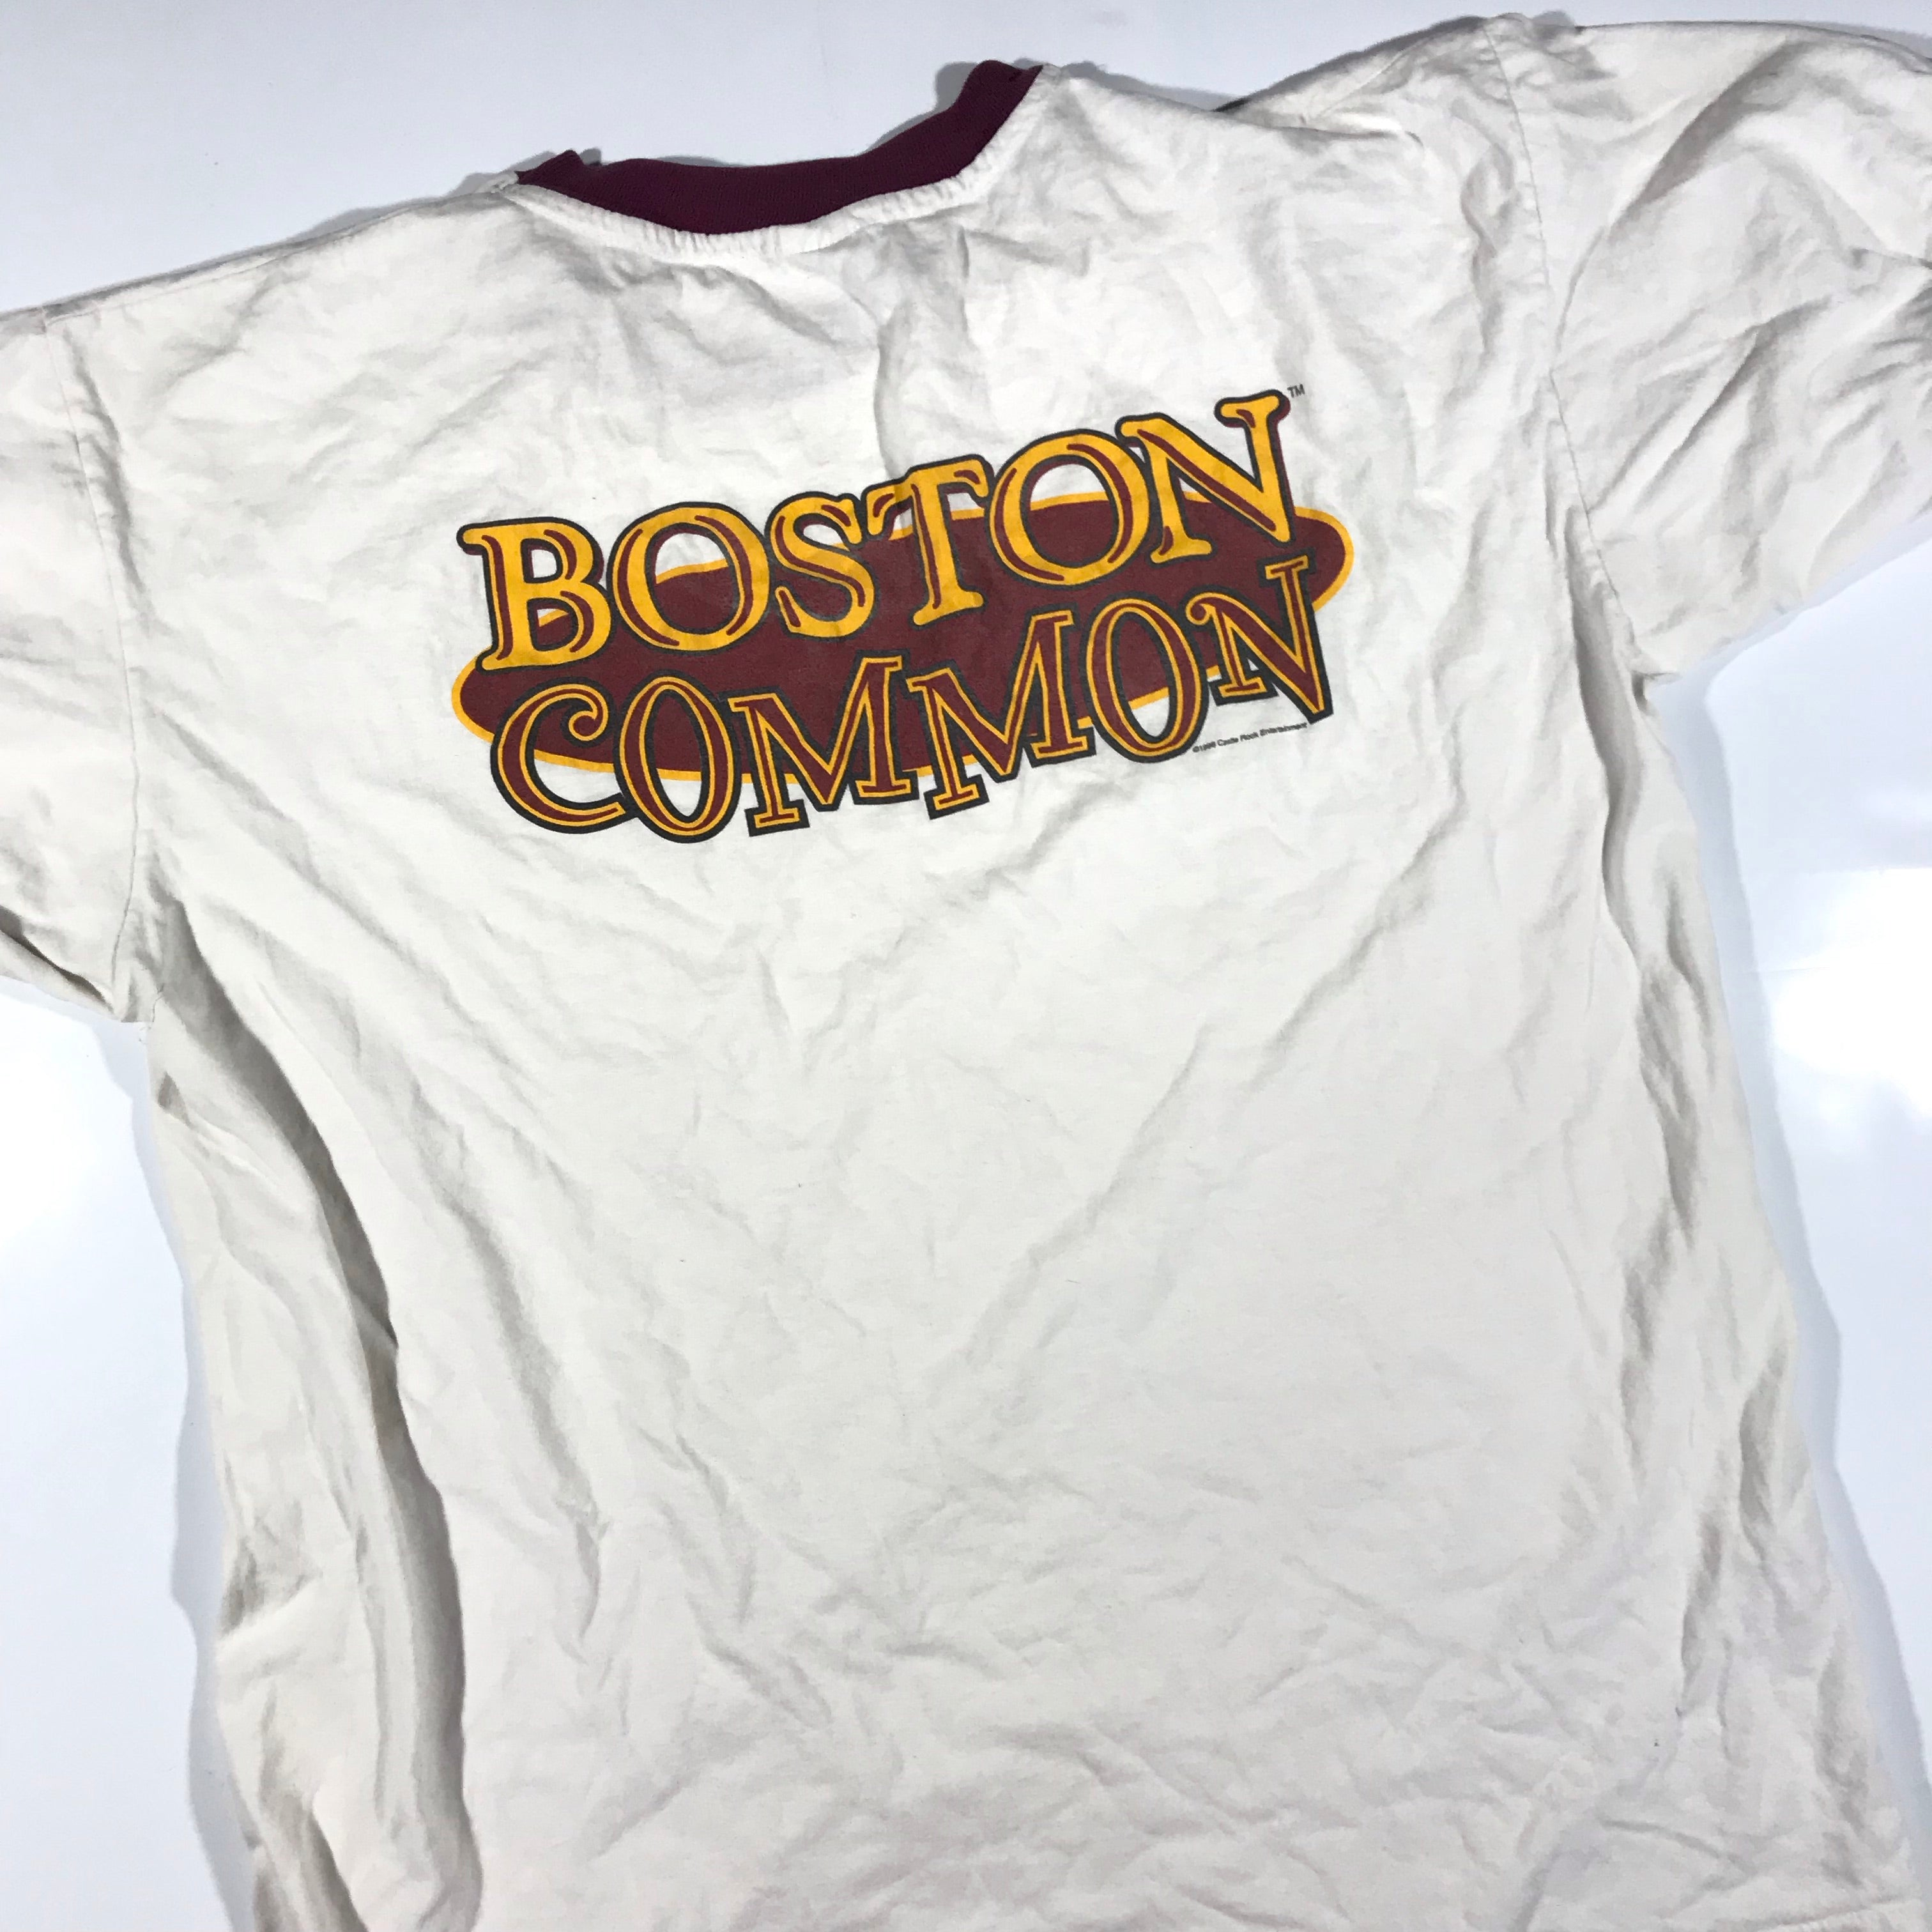 90s Boston common tv show tee. XL